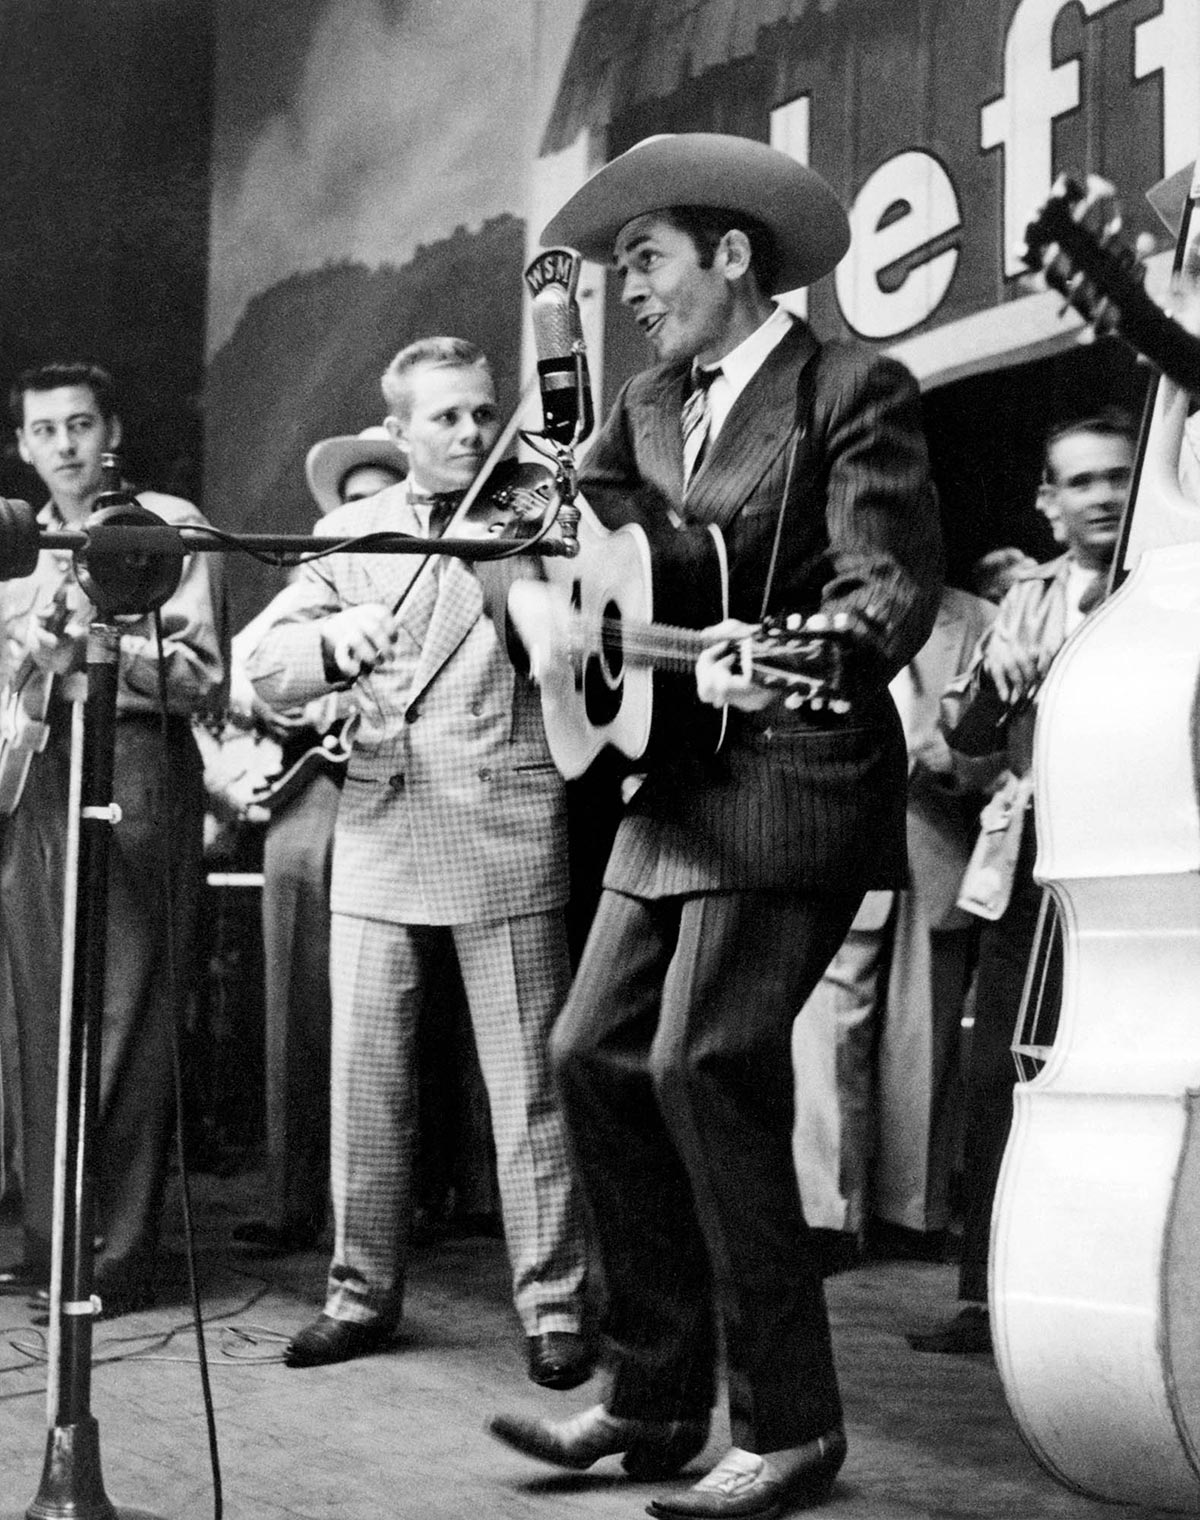 Hank Williams performing on the Grand Ole Opry wearing the suit that is now on display